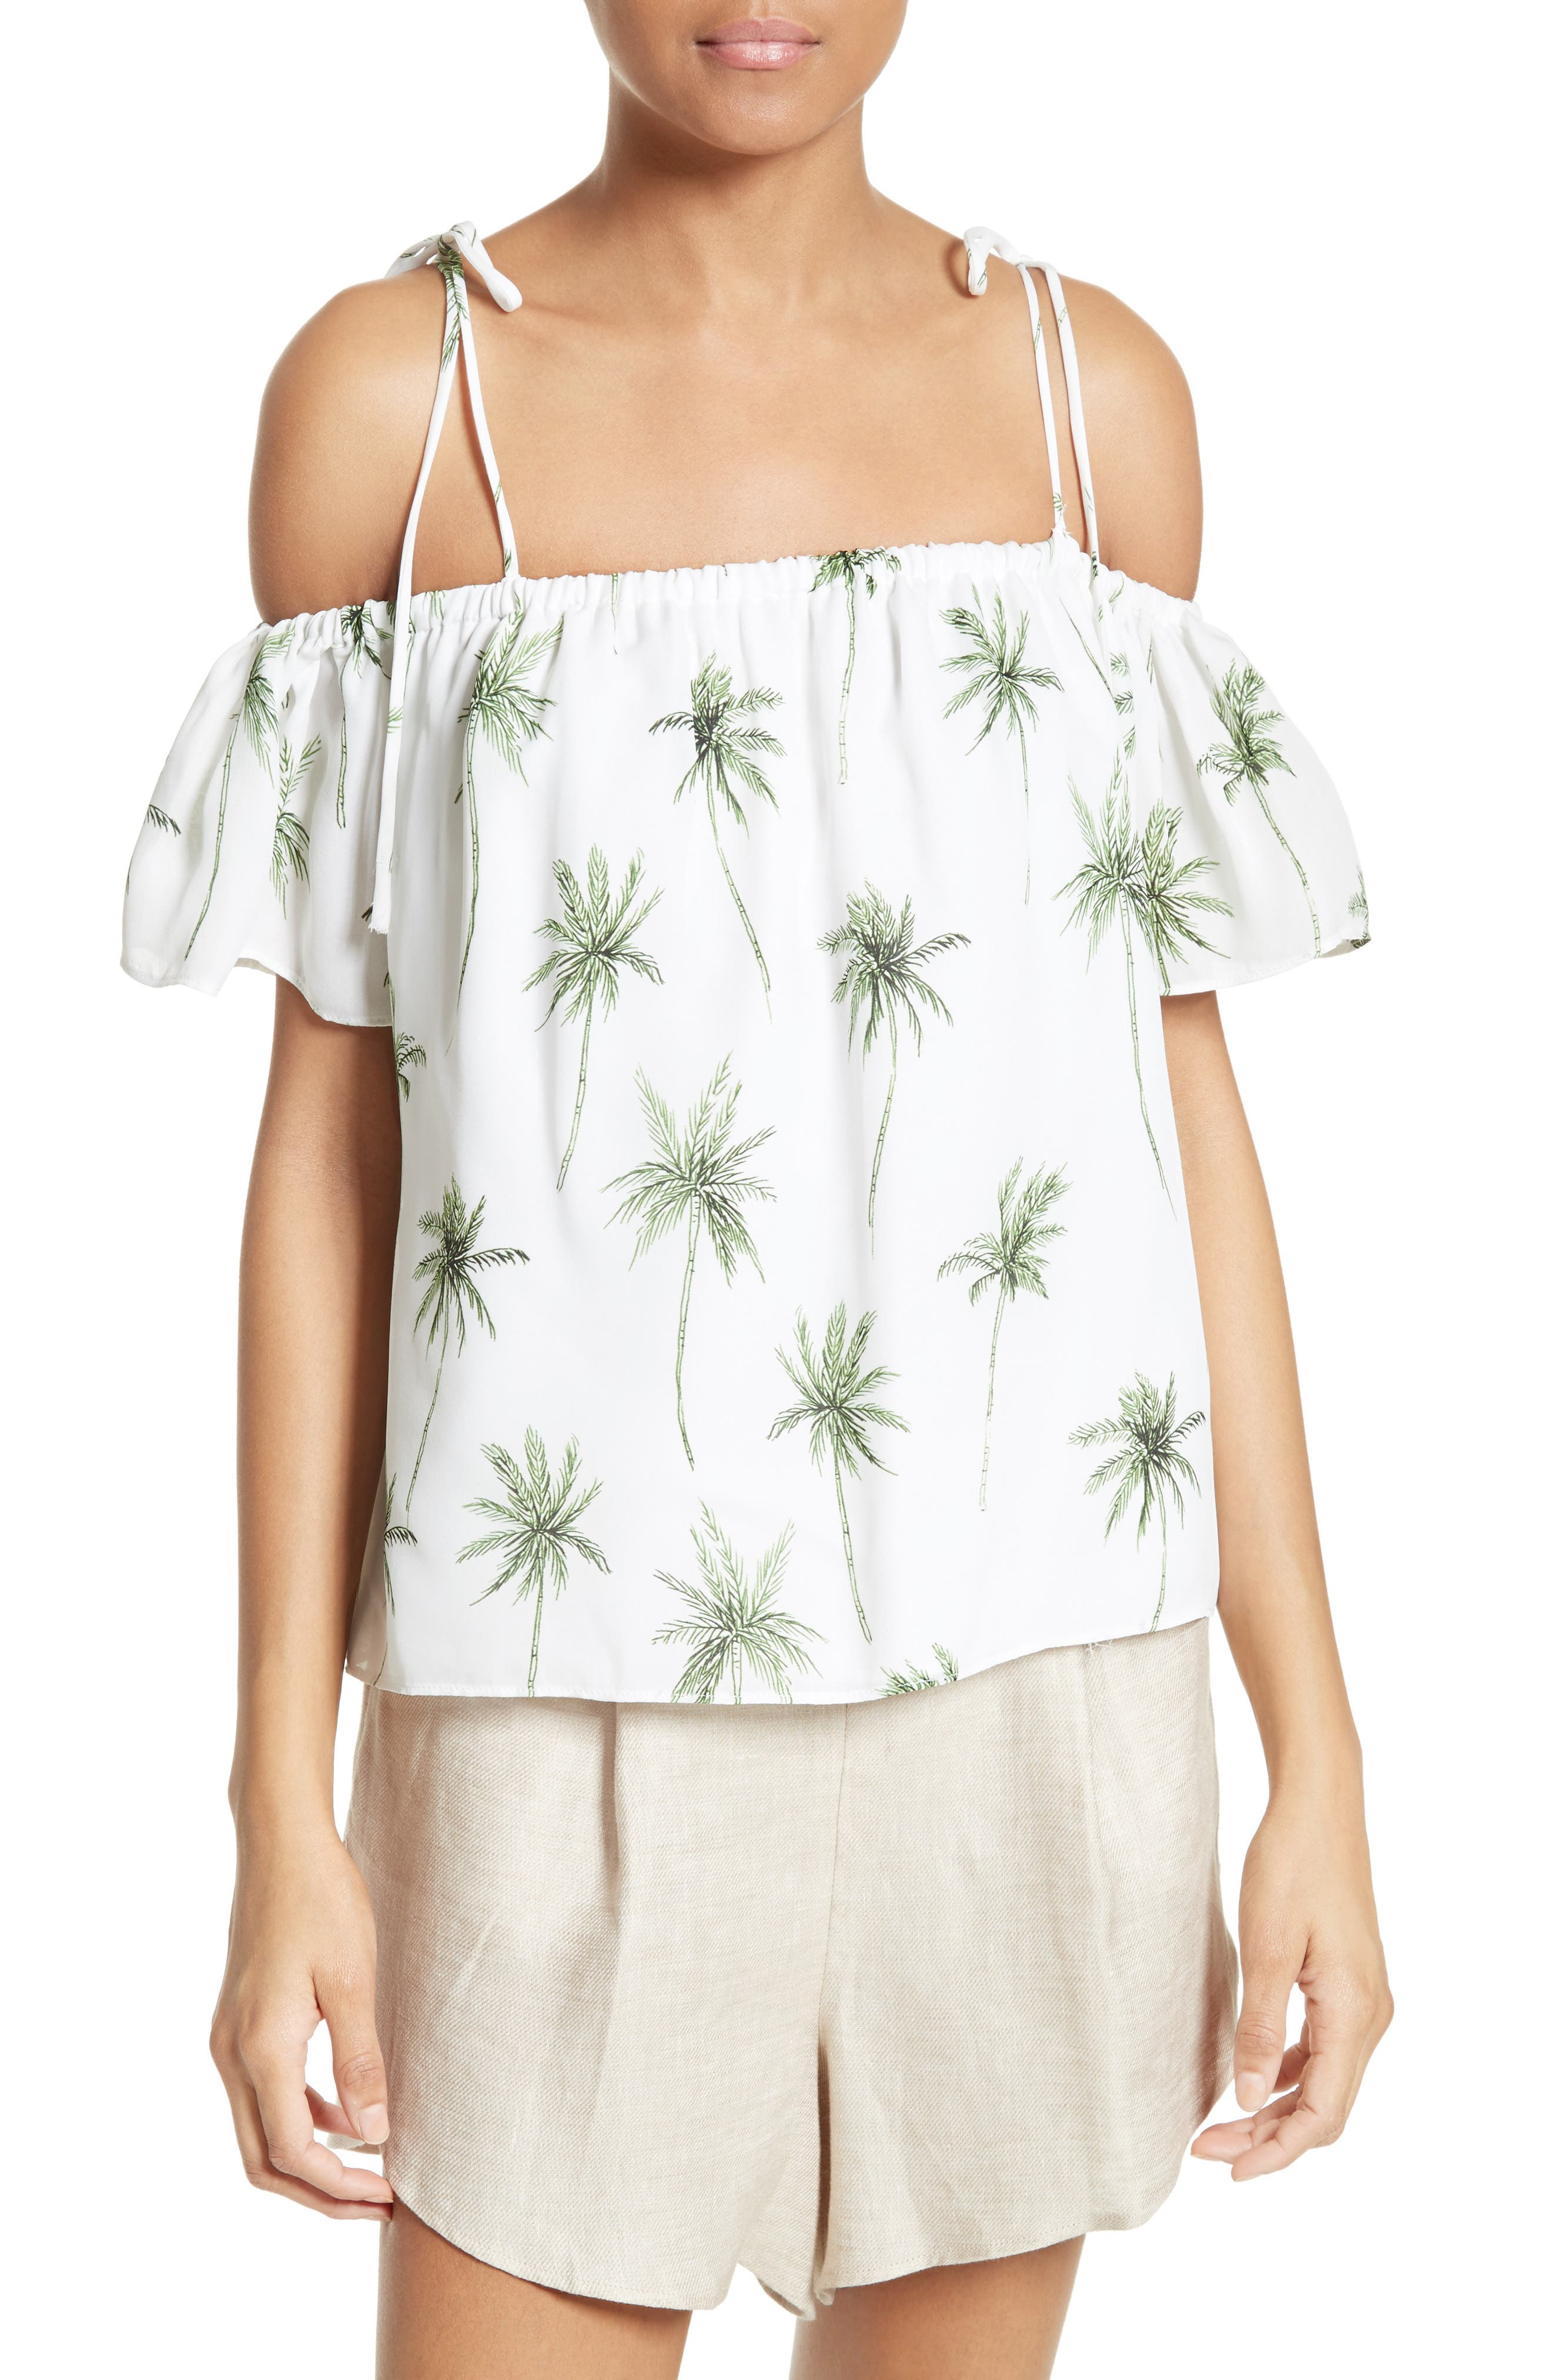 Alternate Image 1 Selected - Milly Eden Palm Tree Print Top